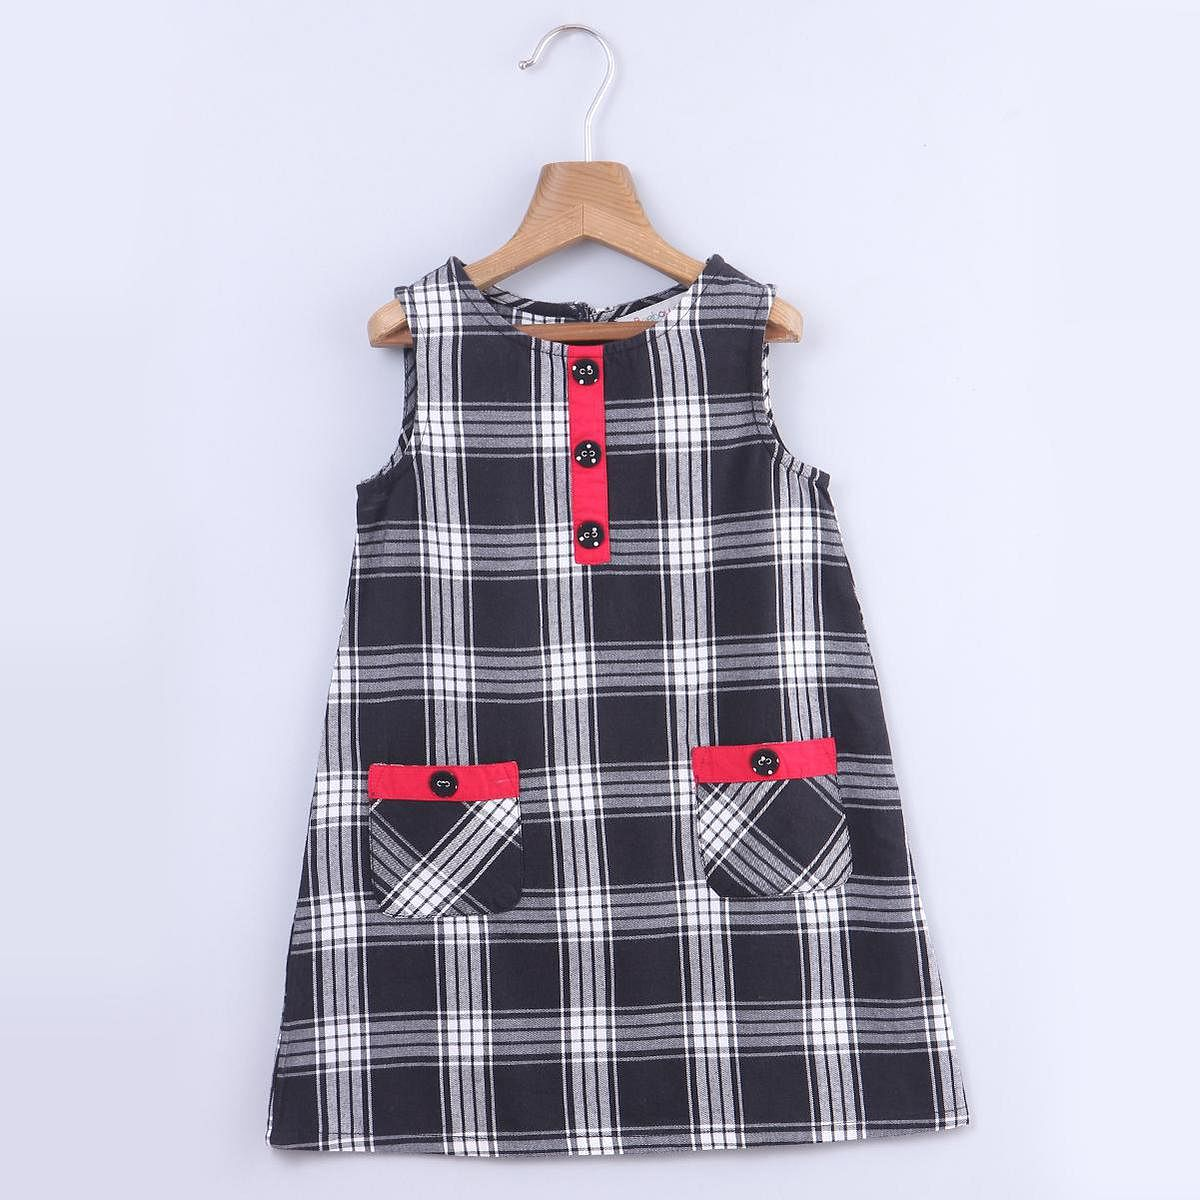 Beebay - Black Colored Y/D Check Pinafore Cotton Dress For Kids Girls